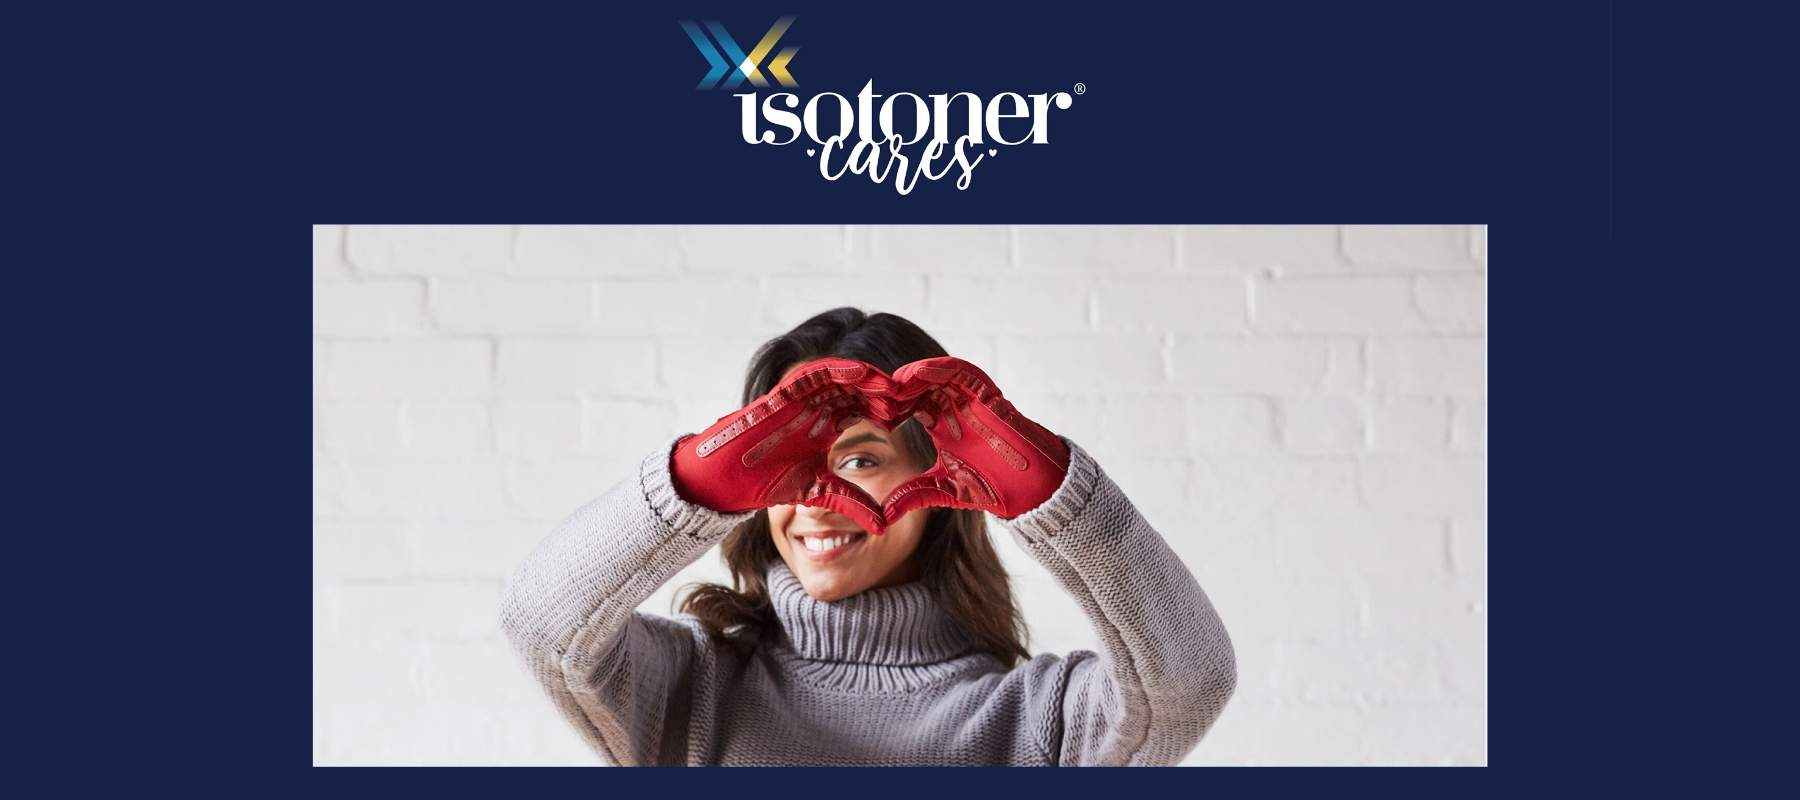 Isotoner Cares logo with women making heart wearing gloves